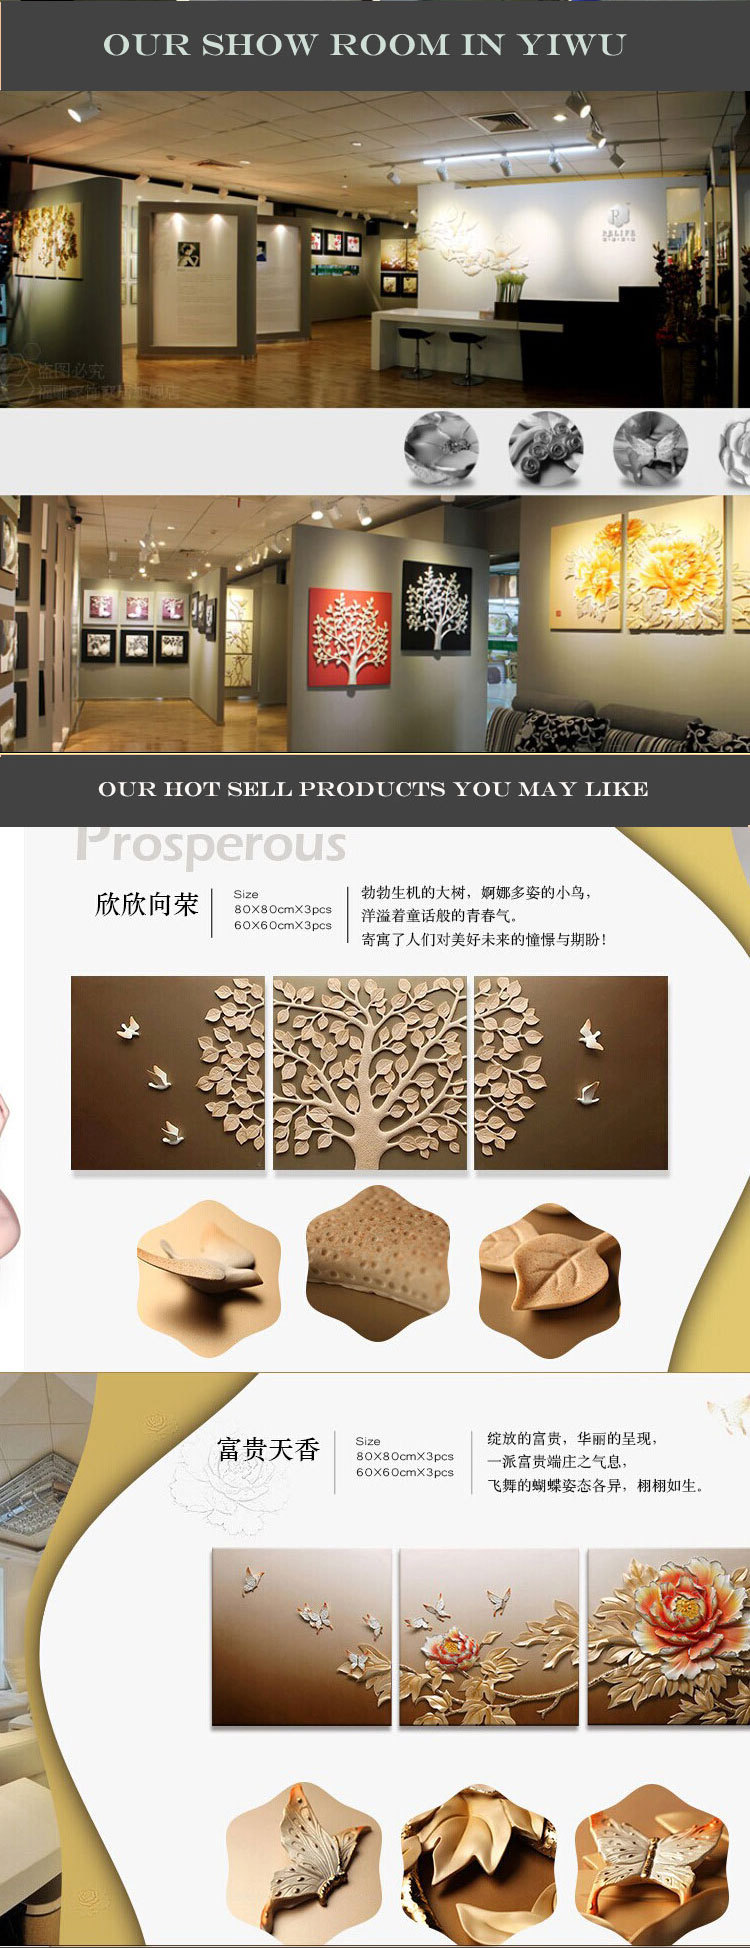 Factory price plastic wall murals wooden wall murals printable factory price plastic wall murals wooden wall murals printable wall murals amipublicfo Image collections